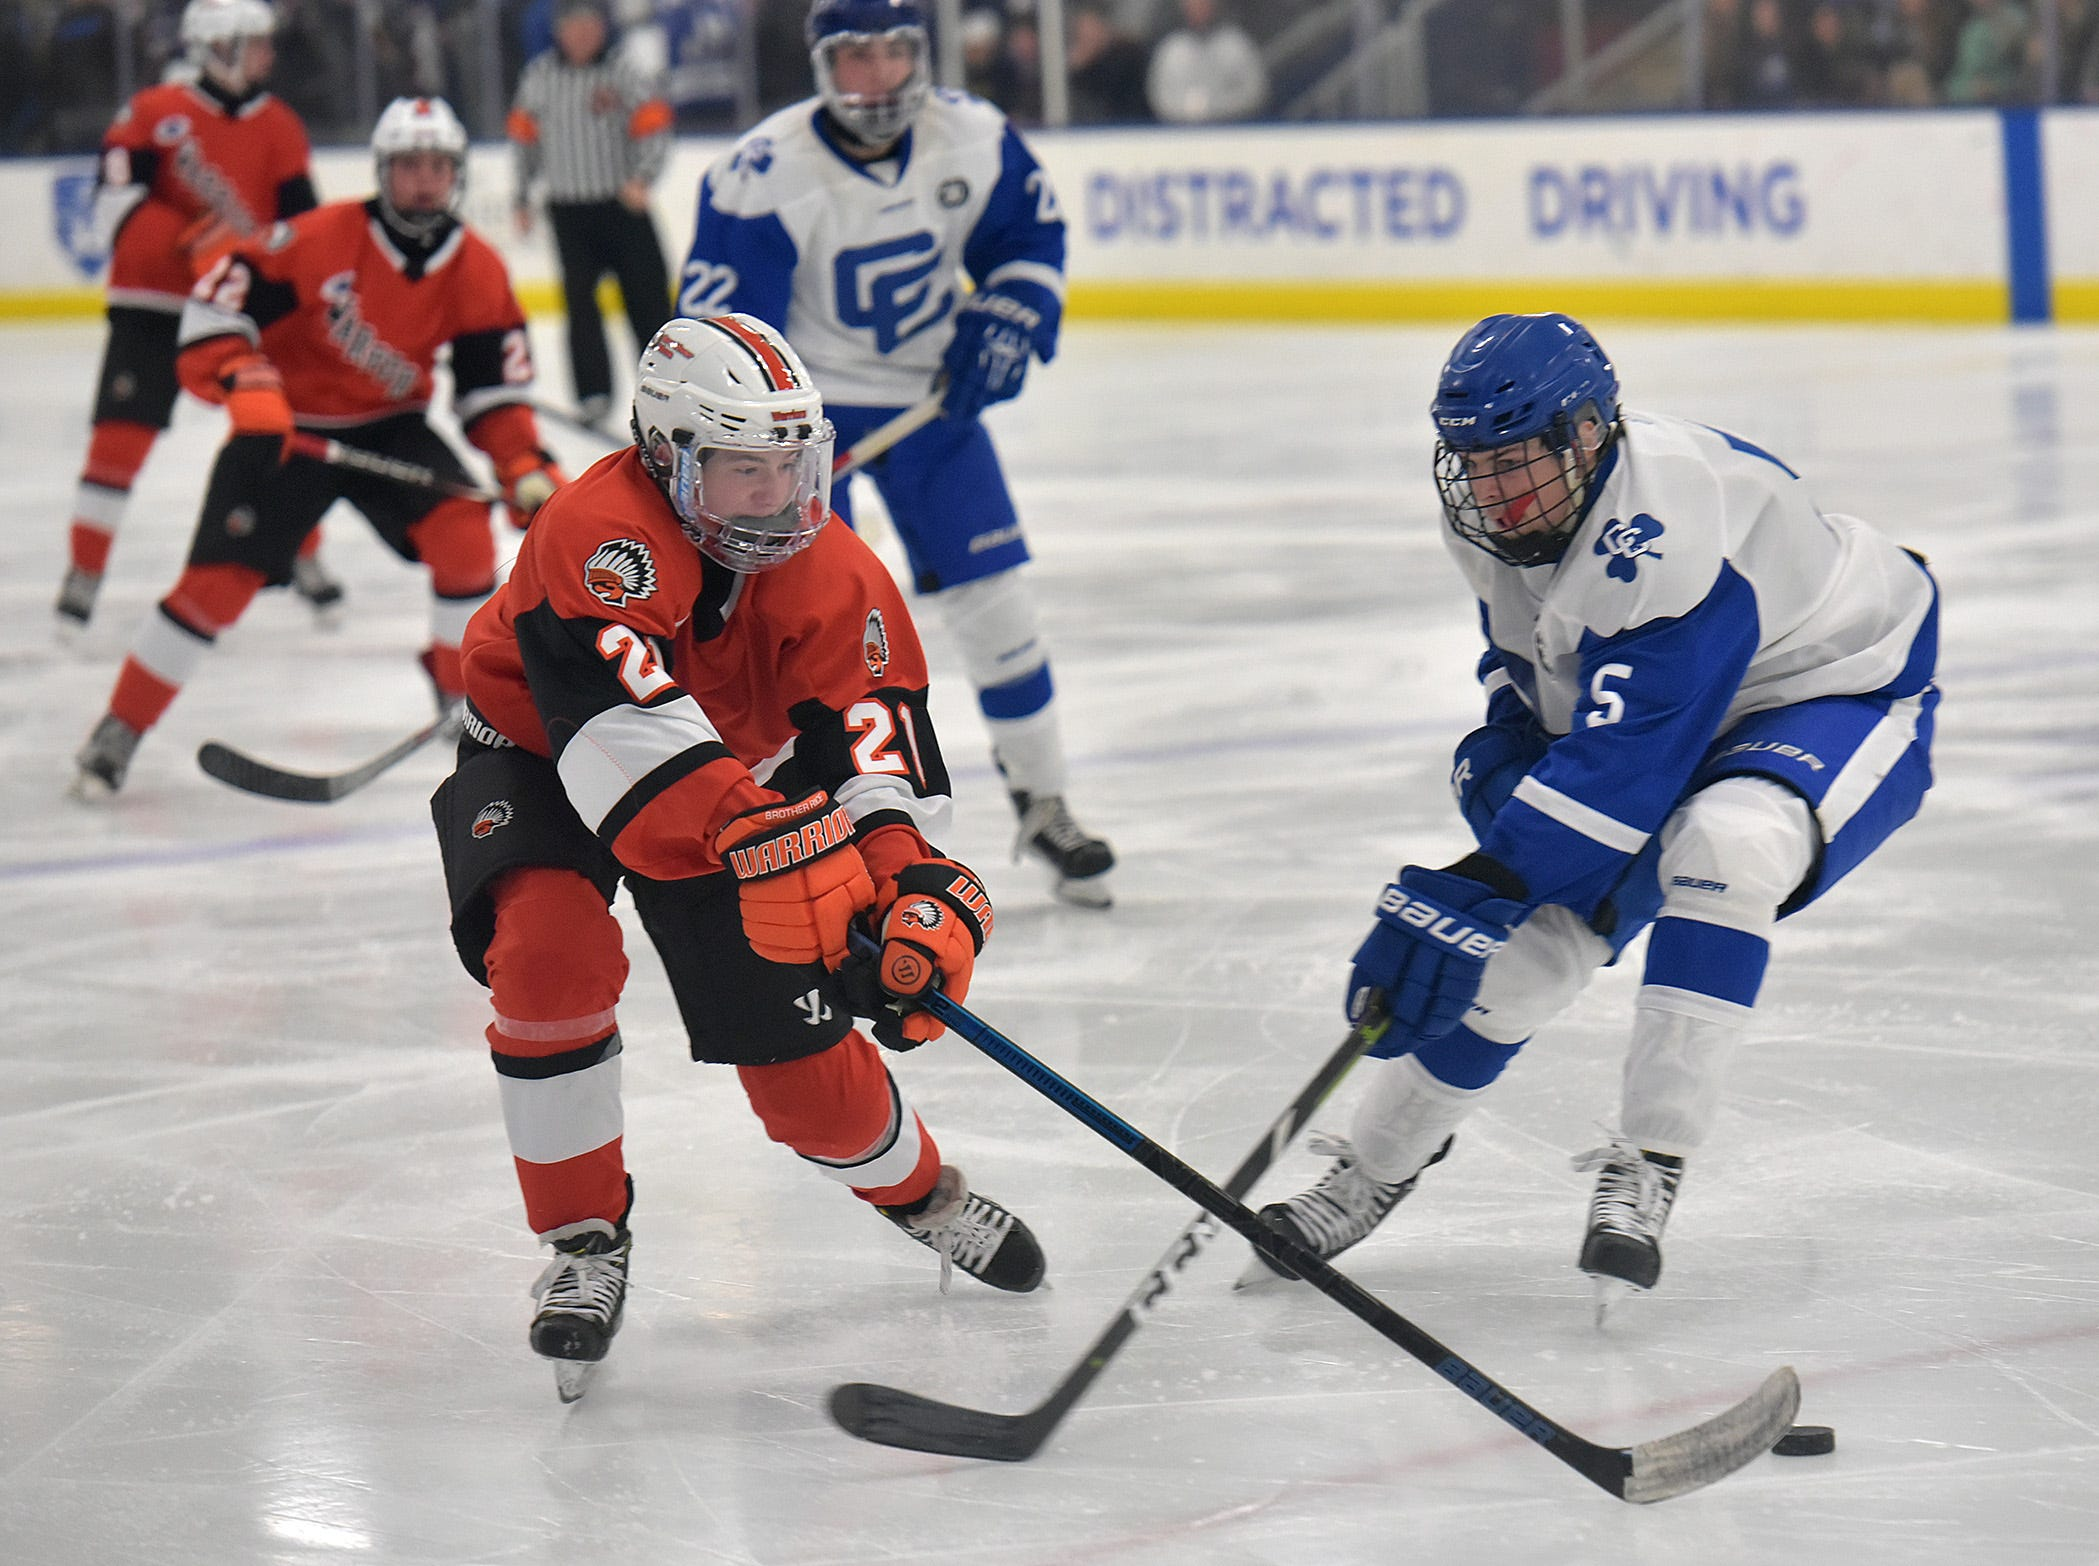 Brother Rice Warrior Ryan Murphy heads for the CC goal. CC defenseman Gordie Husted stops the drive.